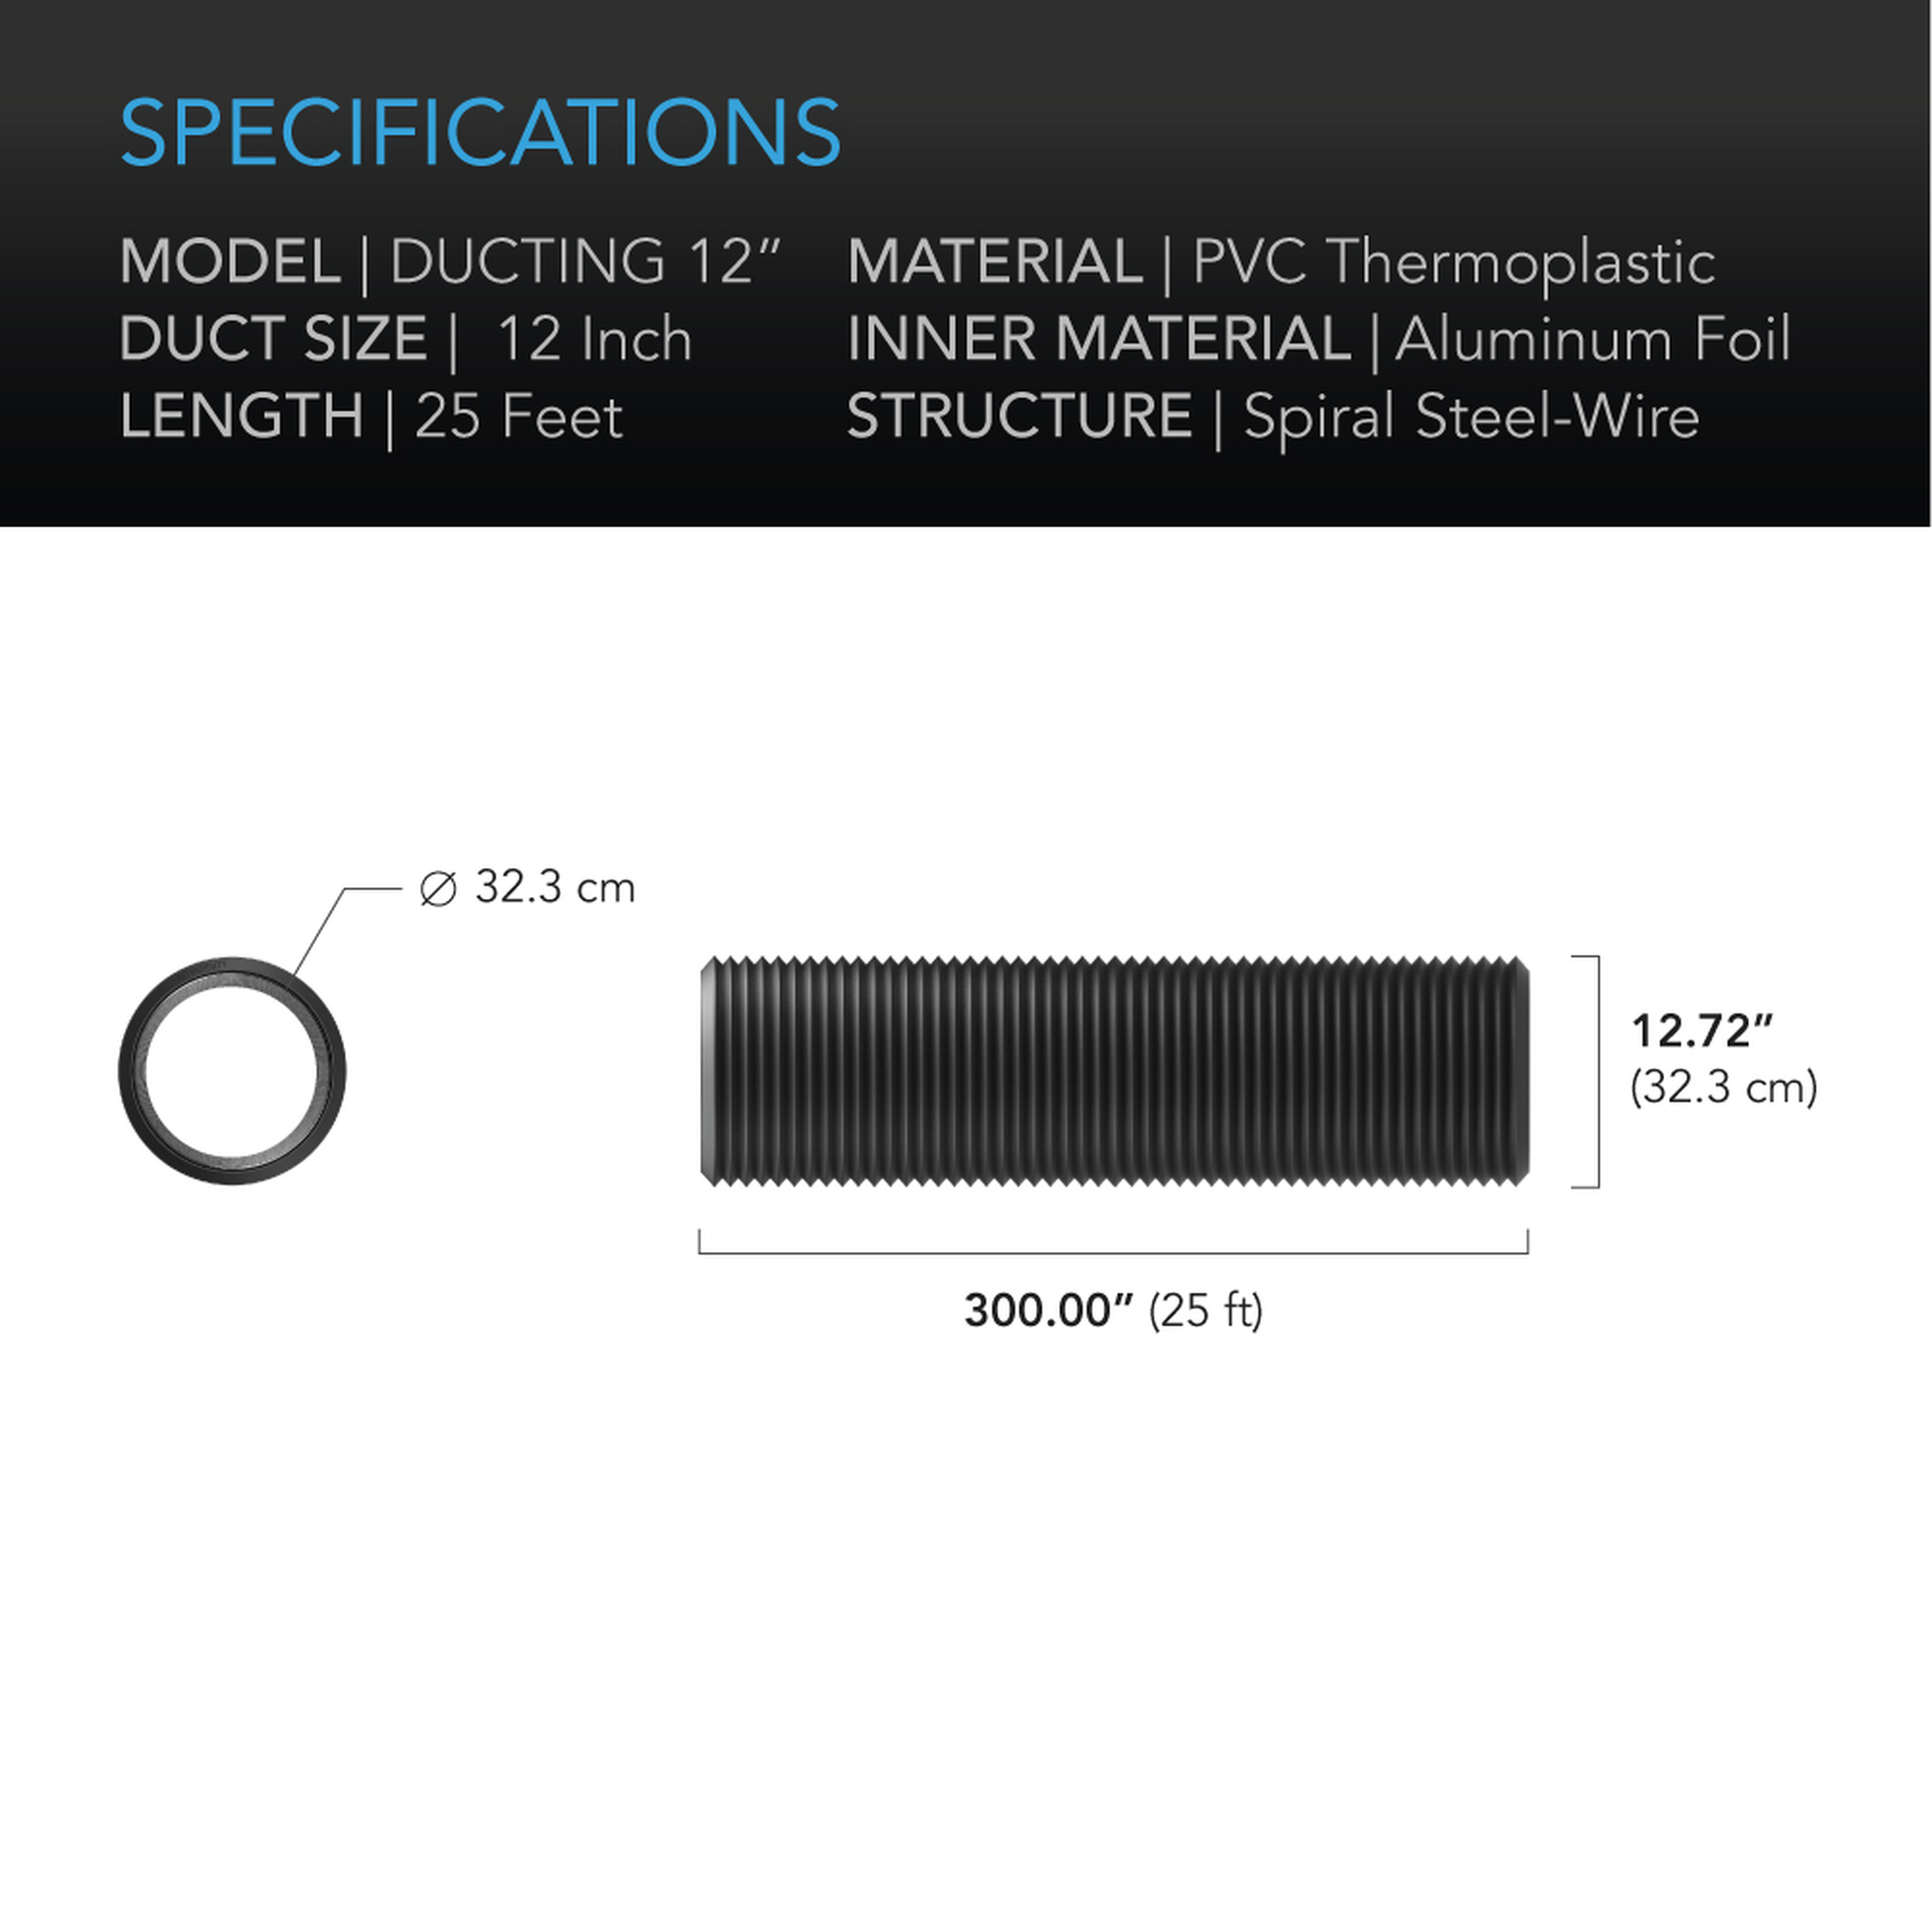 Duct tube 12 25' Specifications